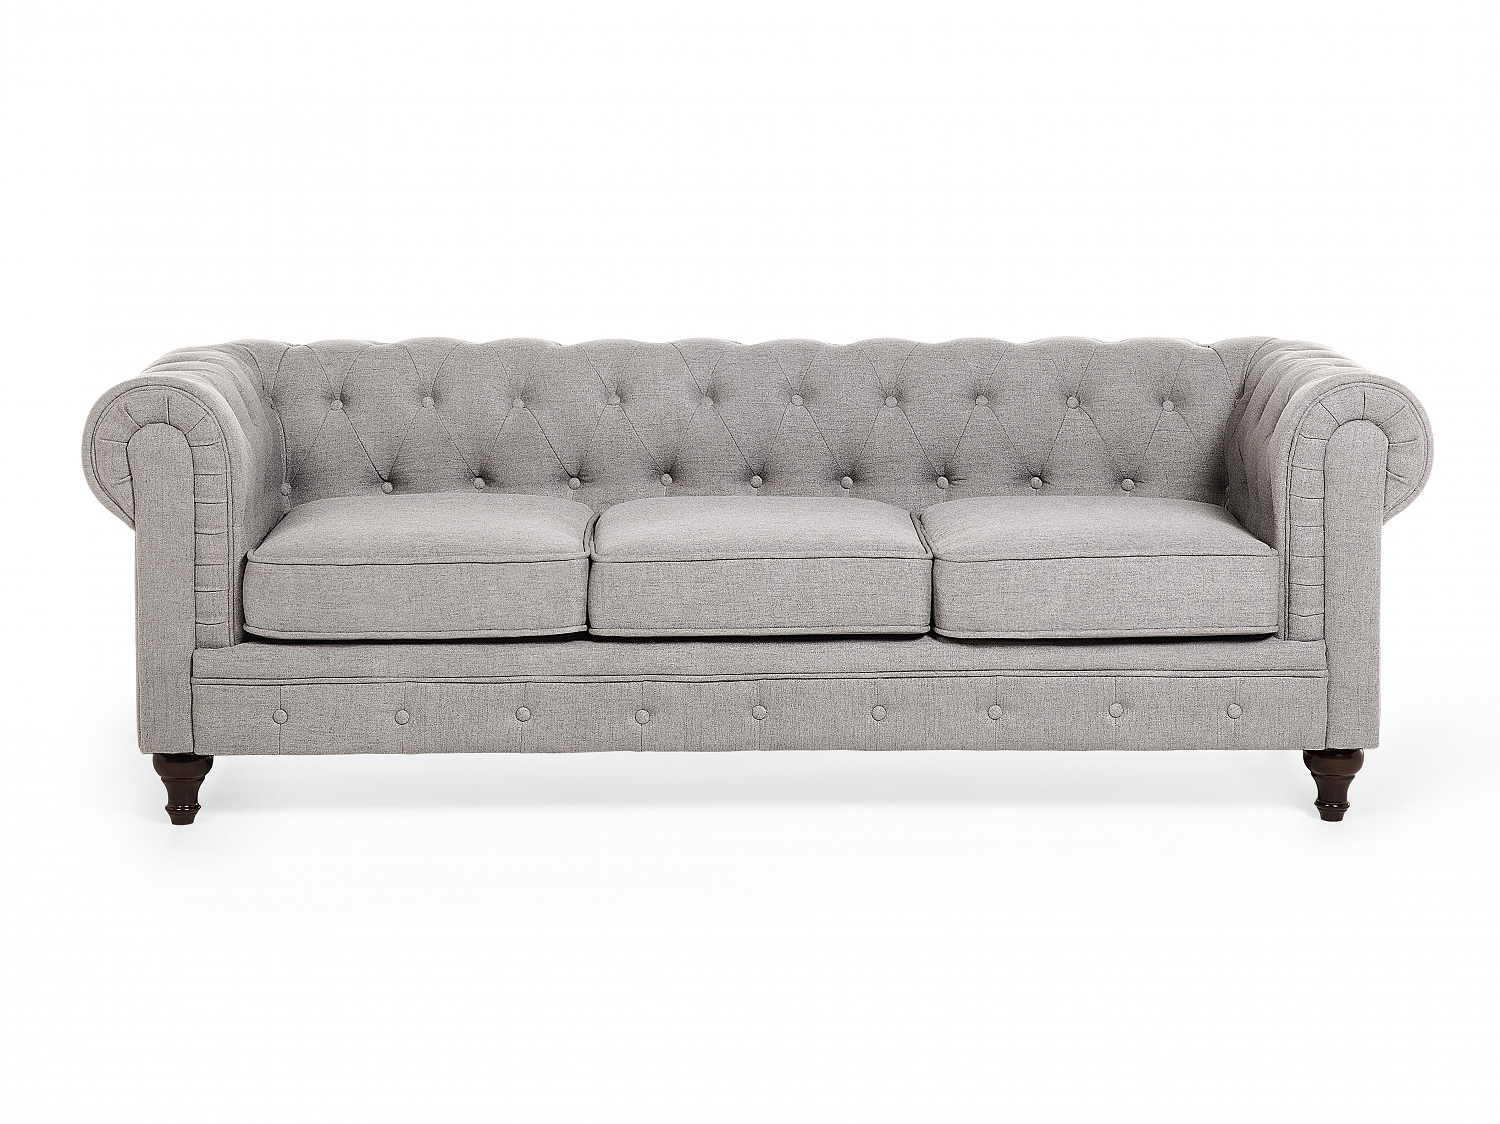 Chesterfield sofa 3 sitzer sofa quilted light grey fabric for Sofa 1 5 sitzer